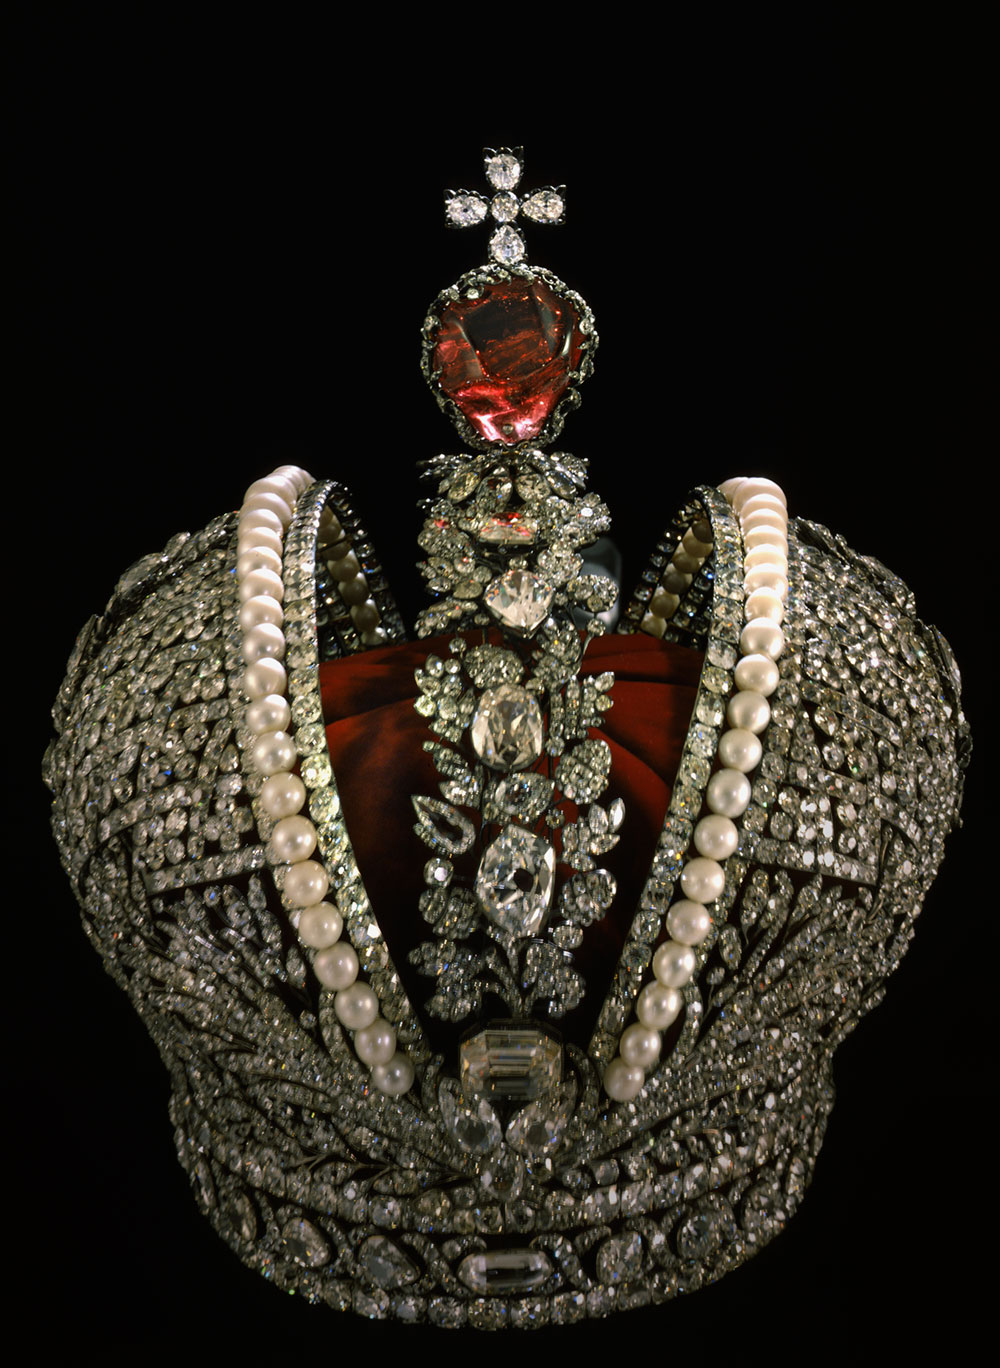 The Imperial Russian Crown. Click on the photo for a larger image.